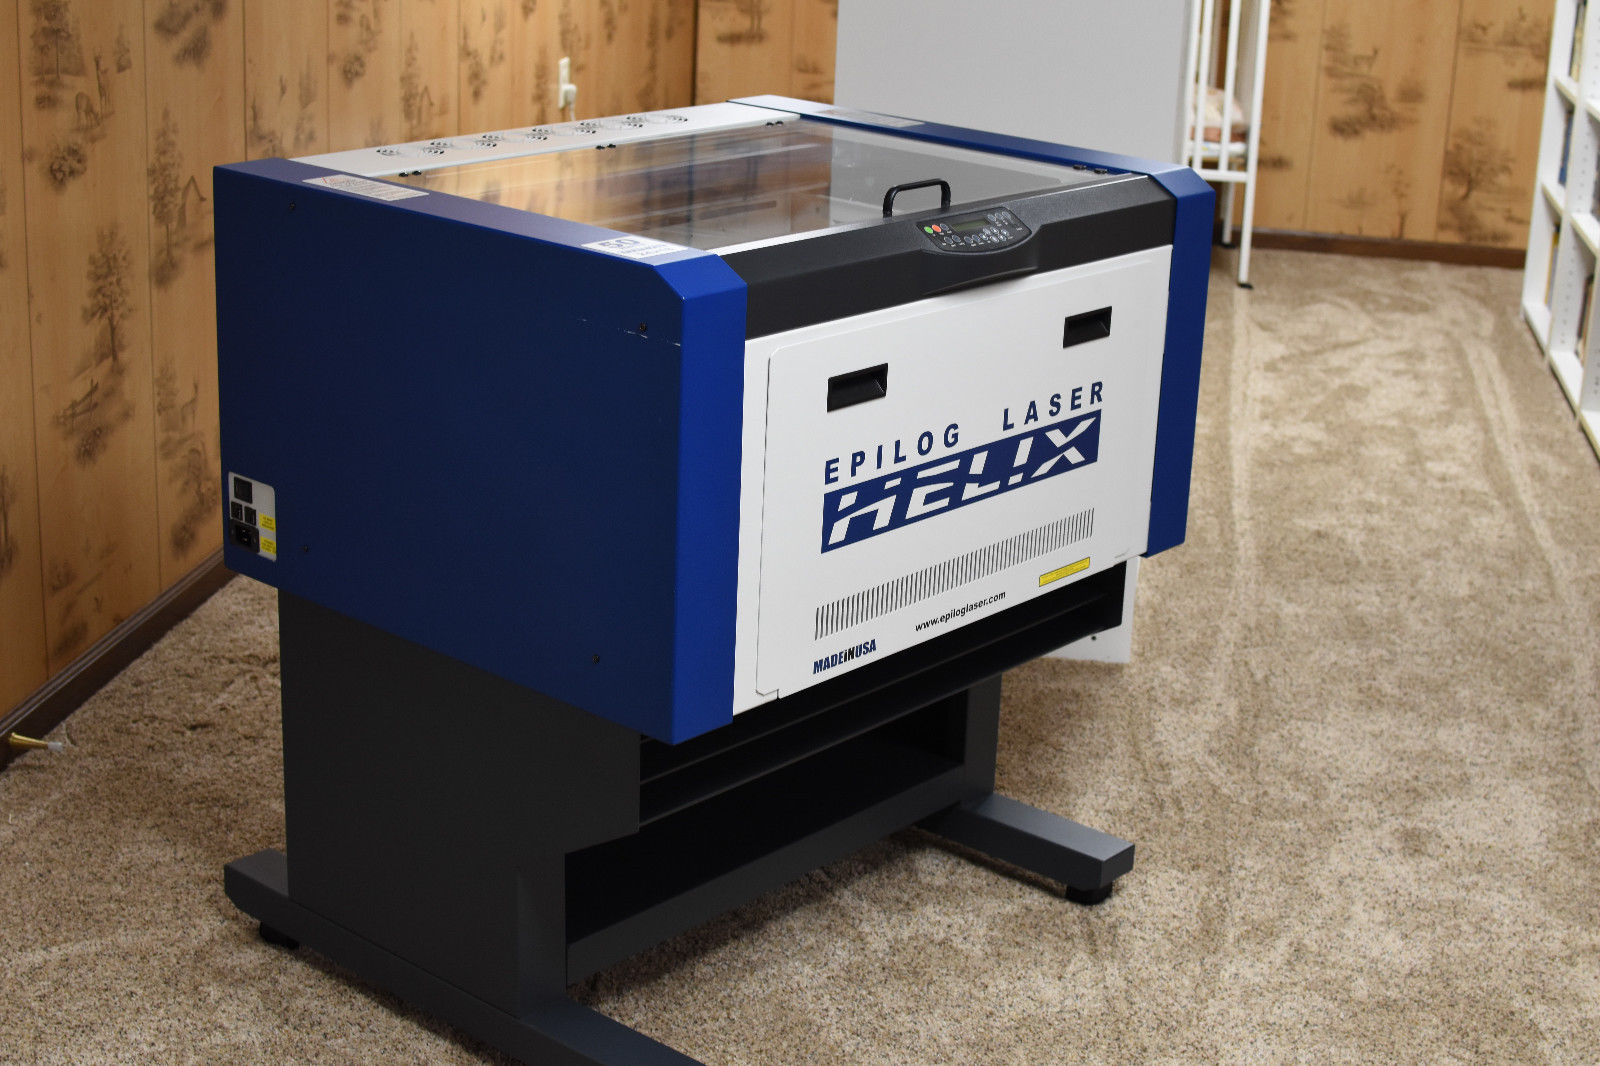 Photo Epilog Helix Laser Engraver 50 watt 24 x 18